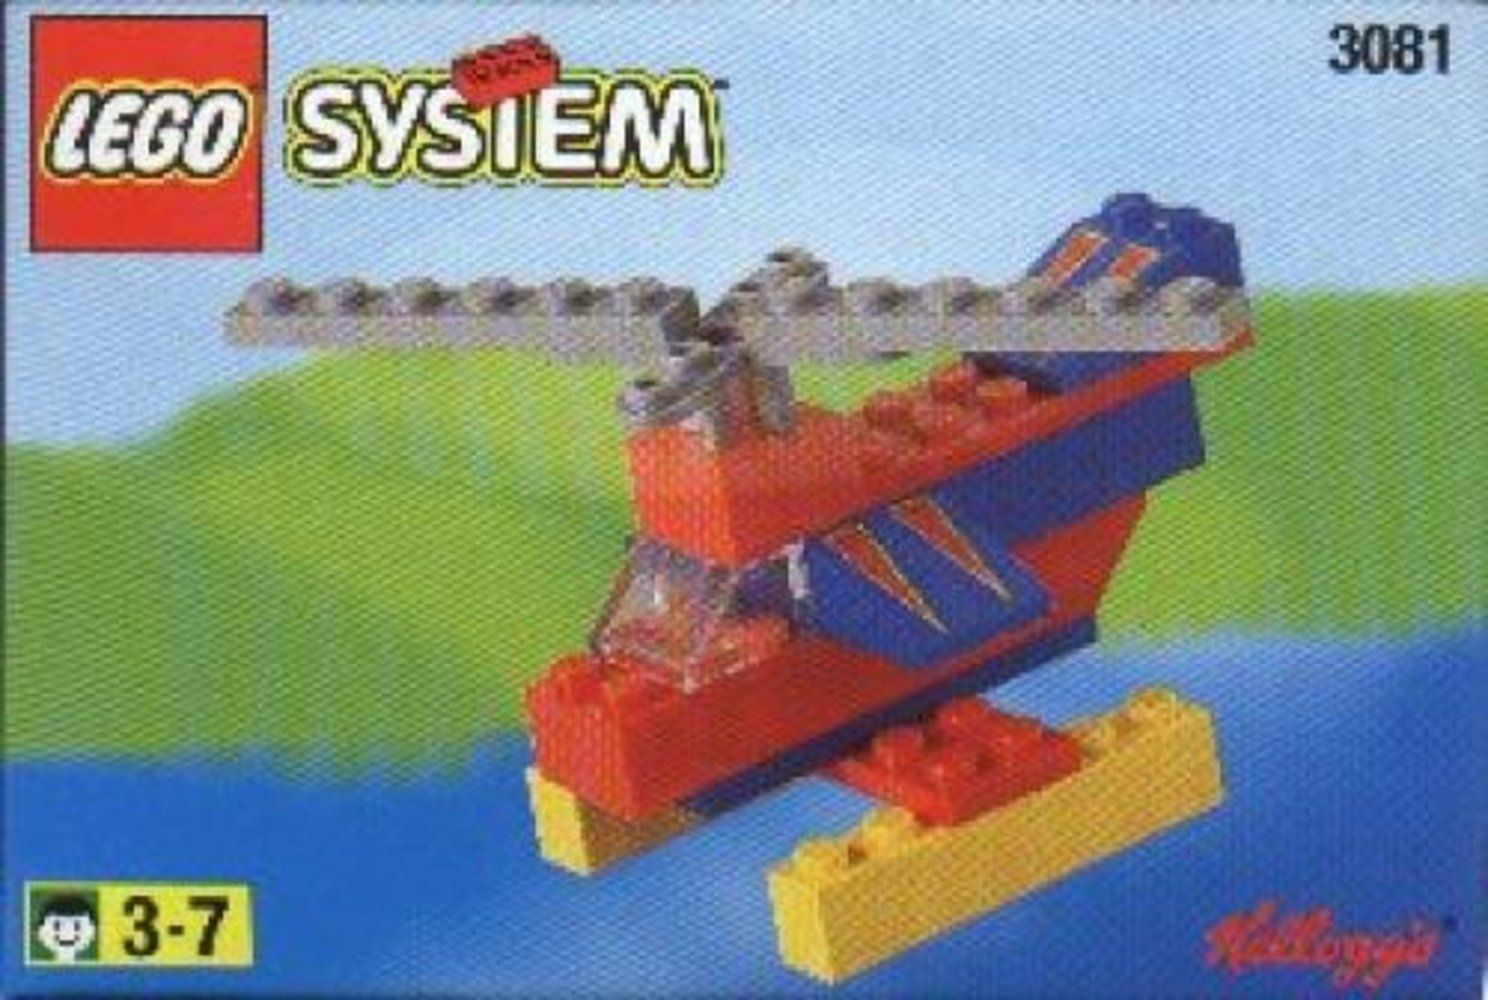 Kellogg's Promotional Set: Helicopter